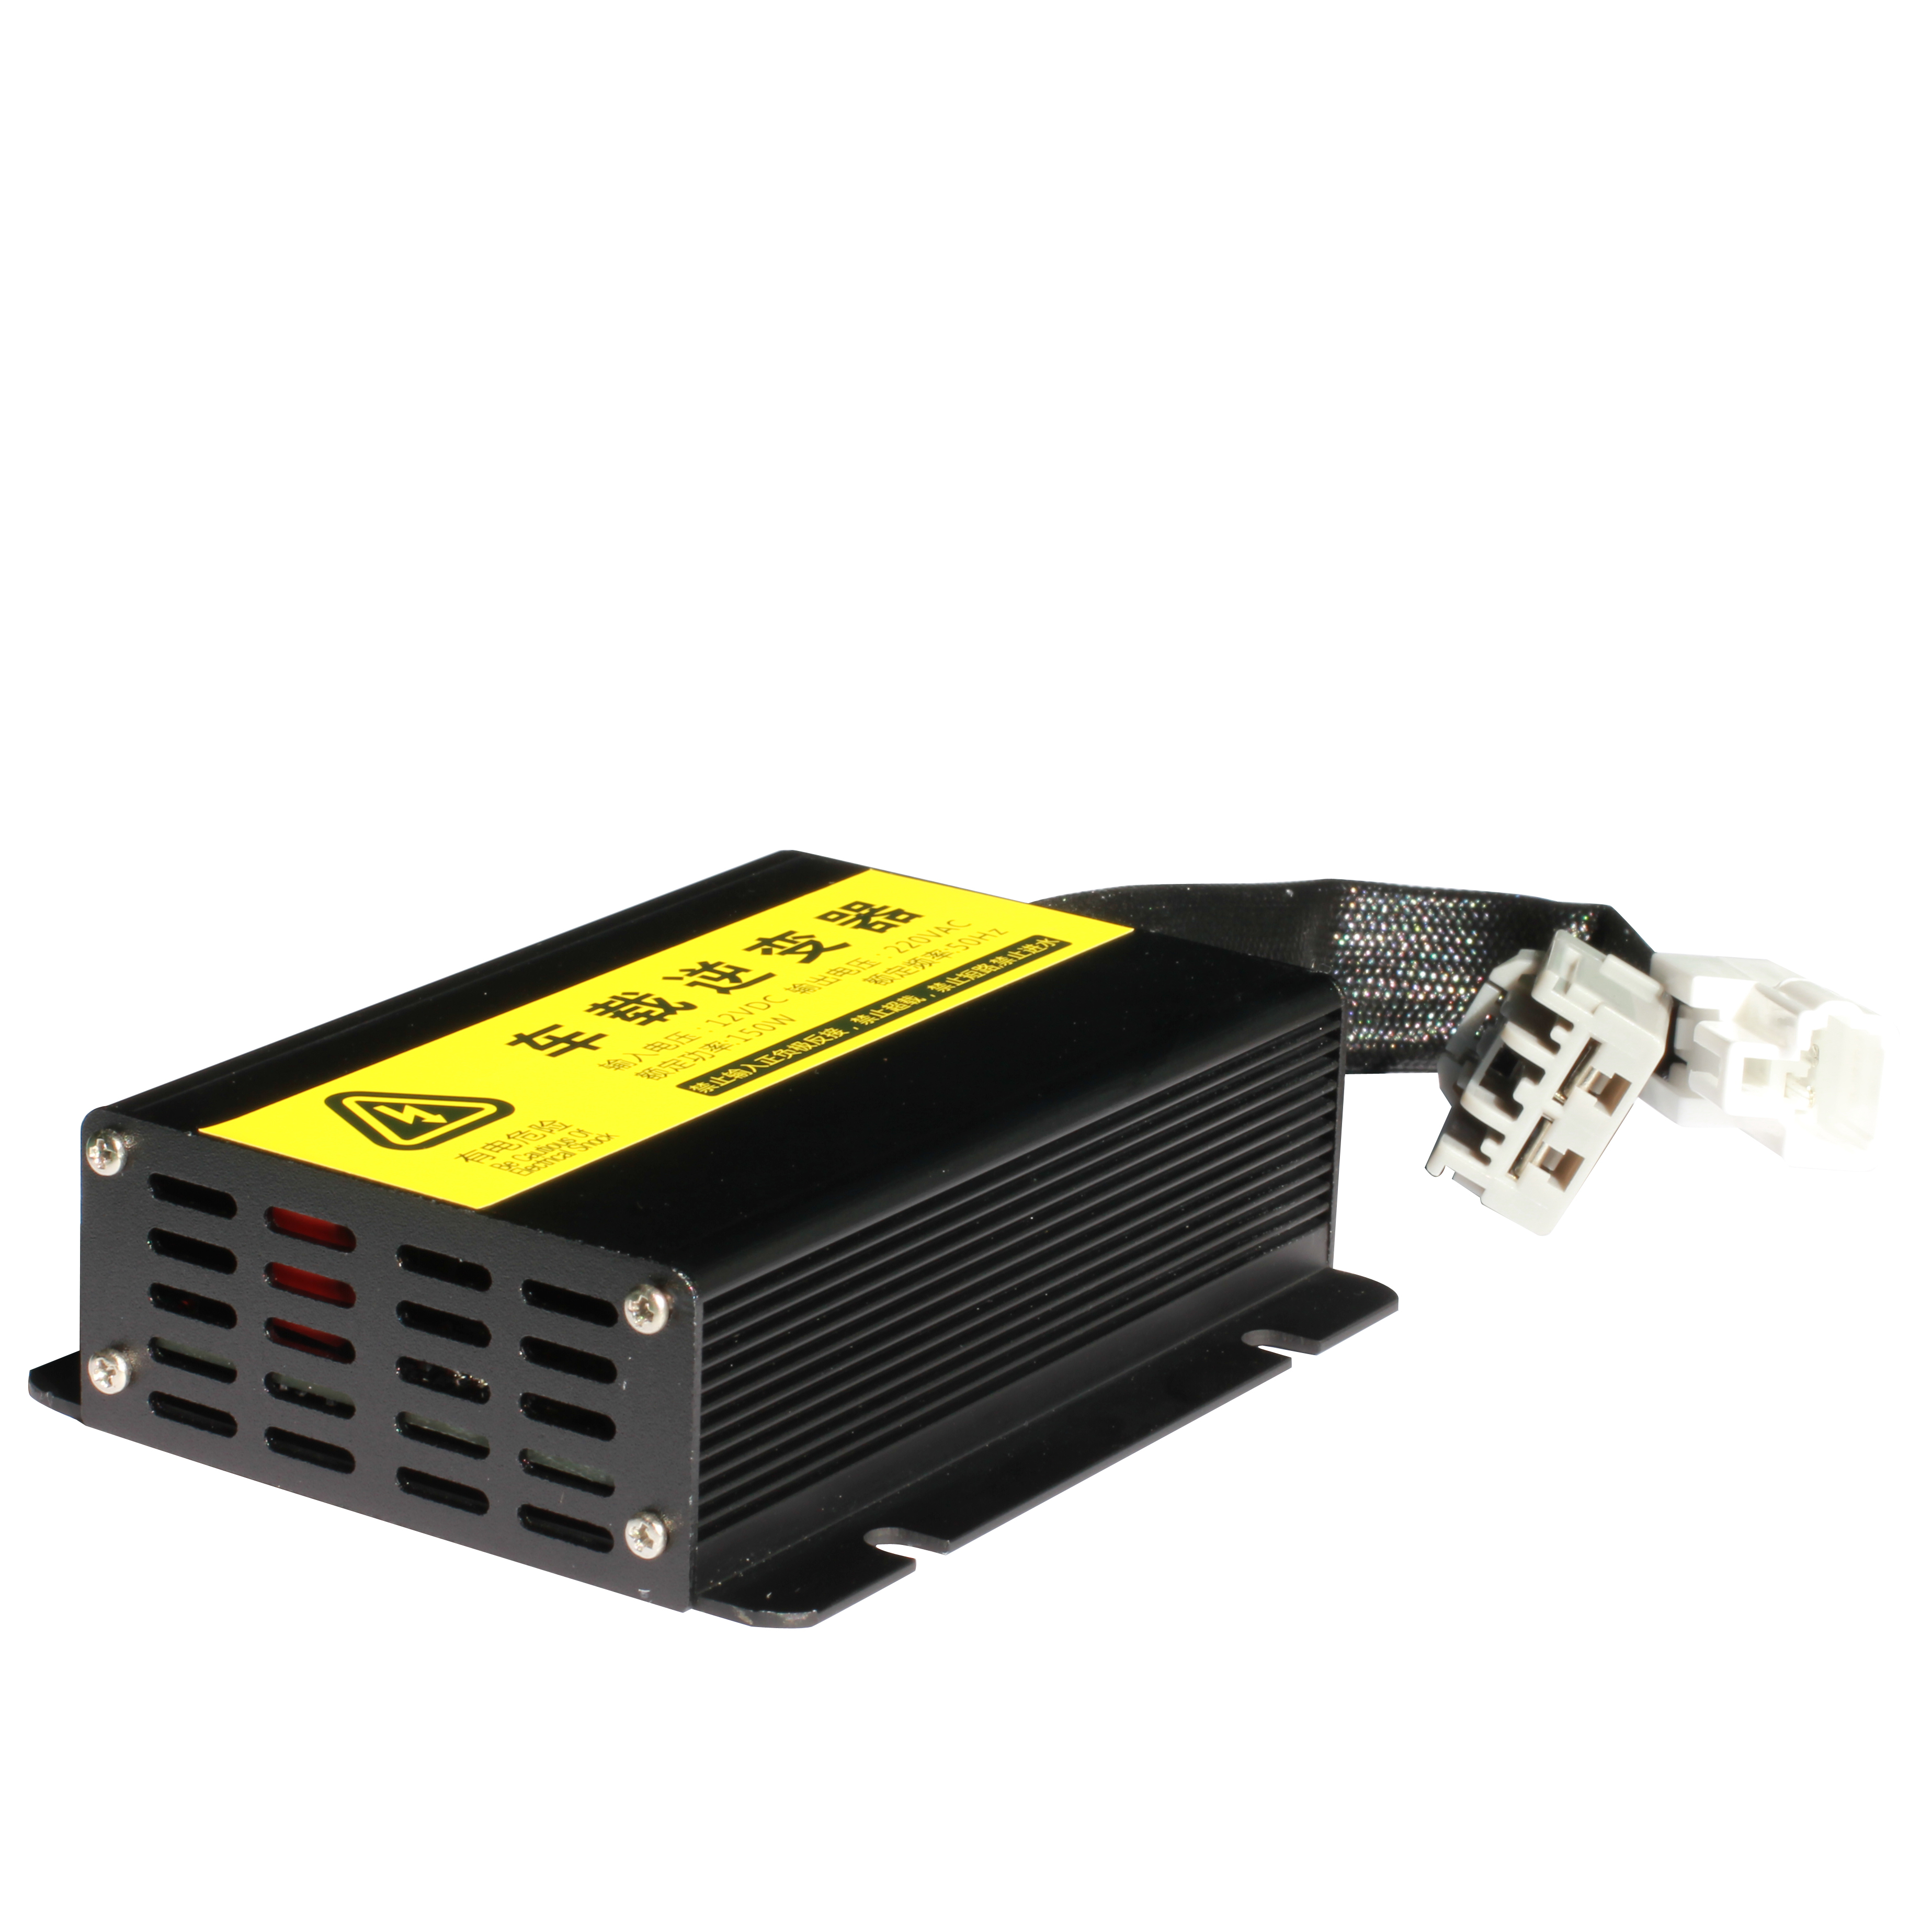 Customized 150W power inverter for car refitting with customized connectors